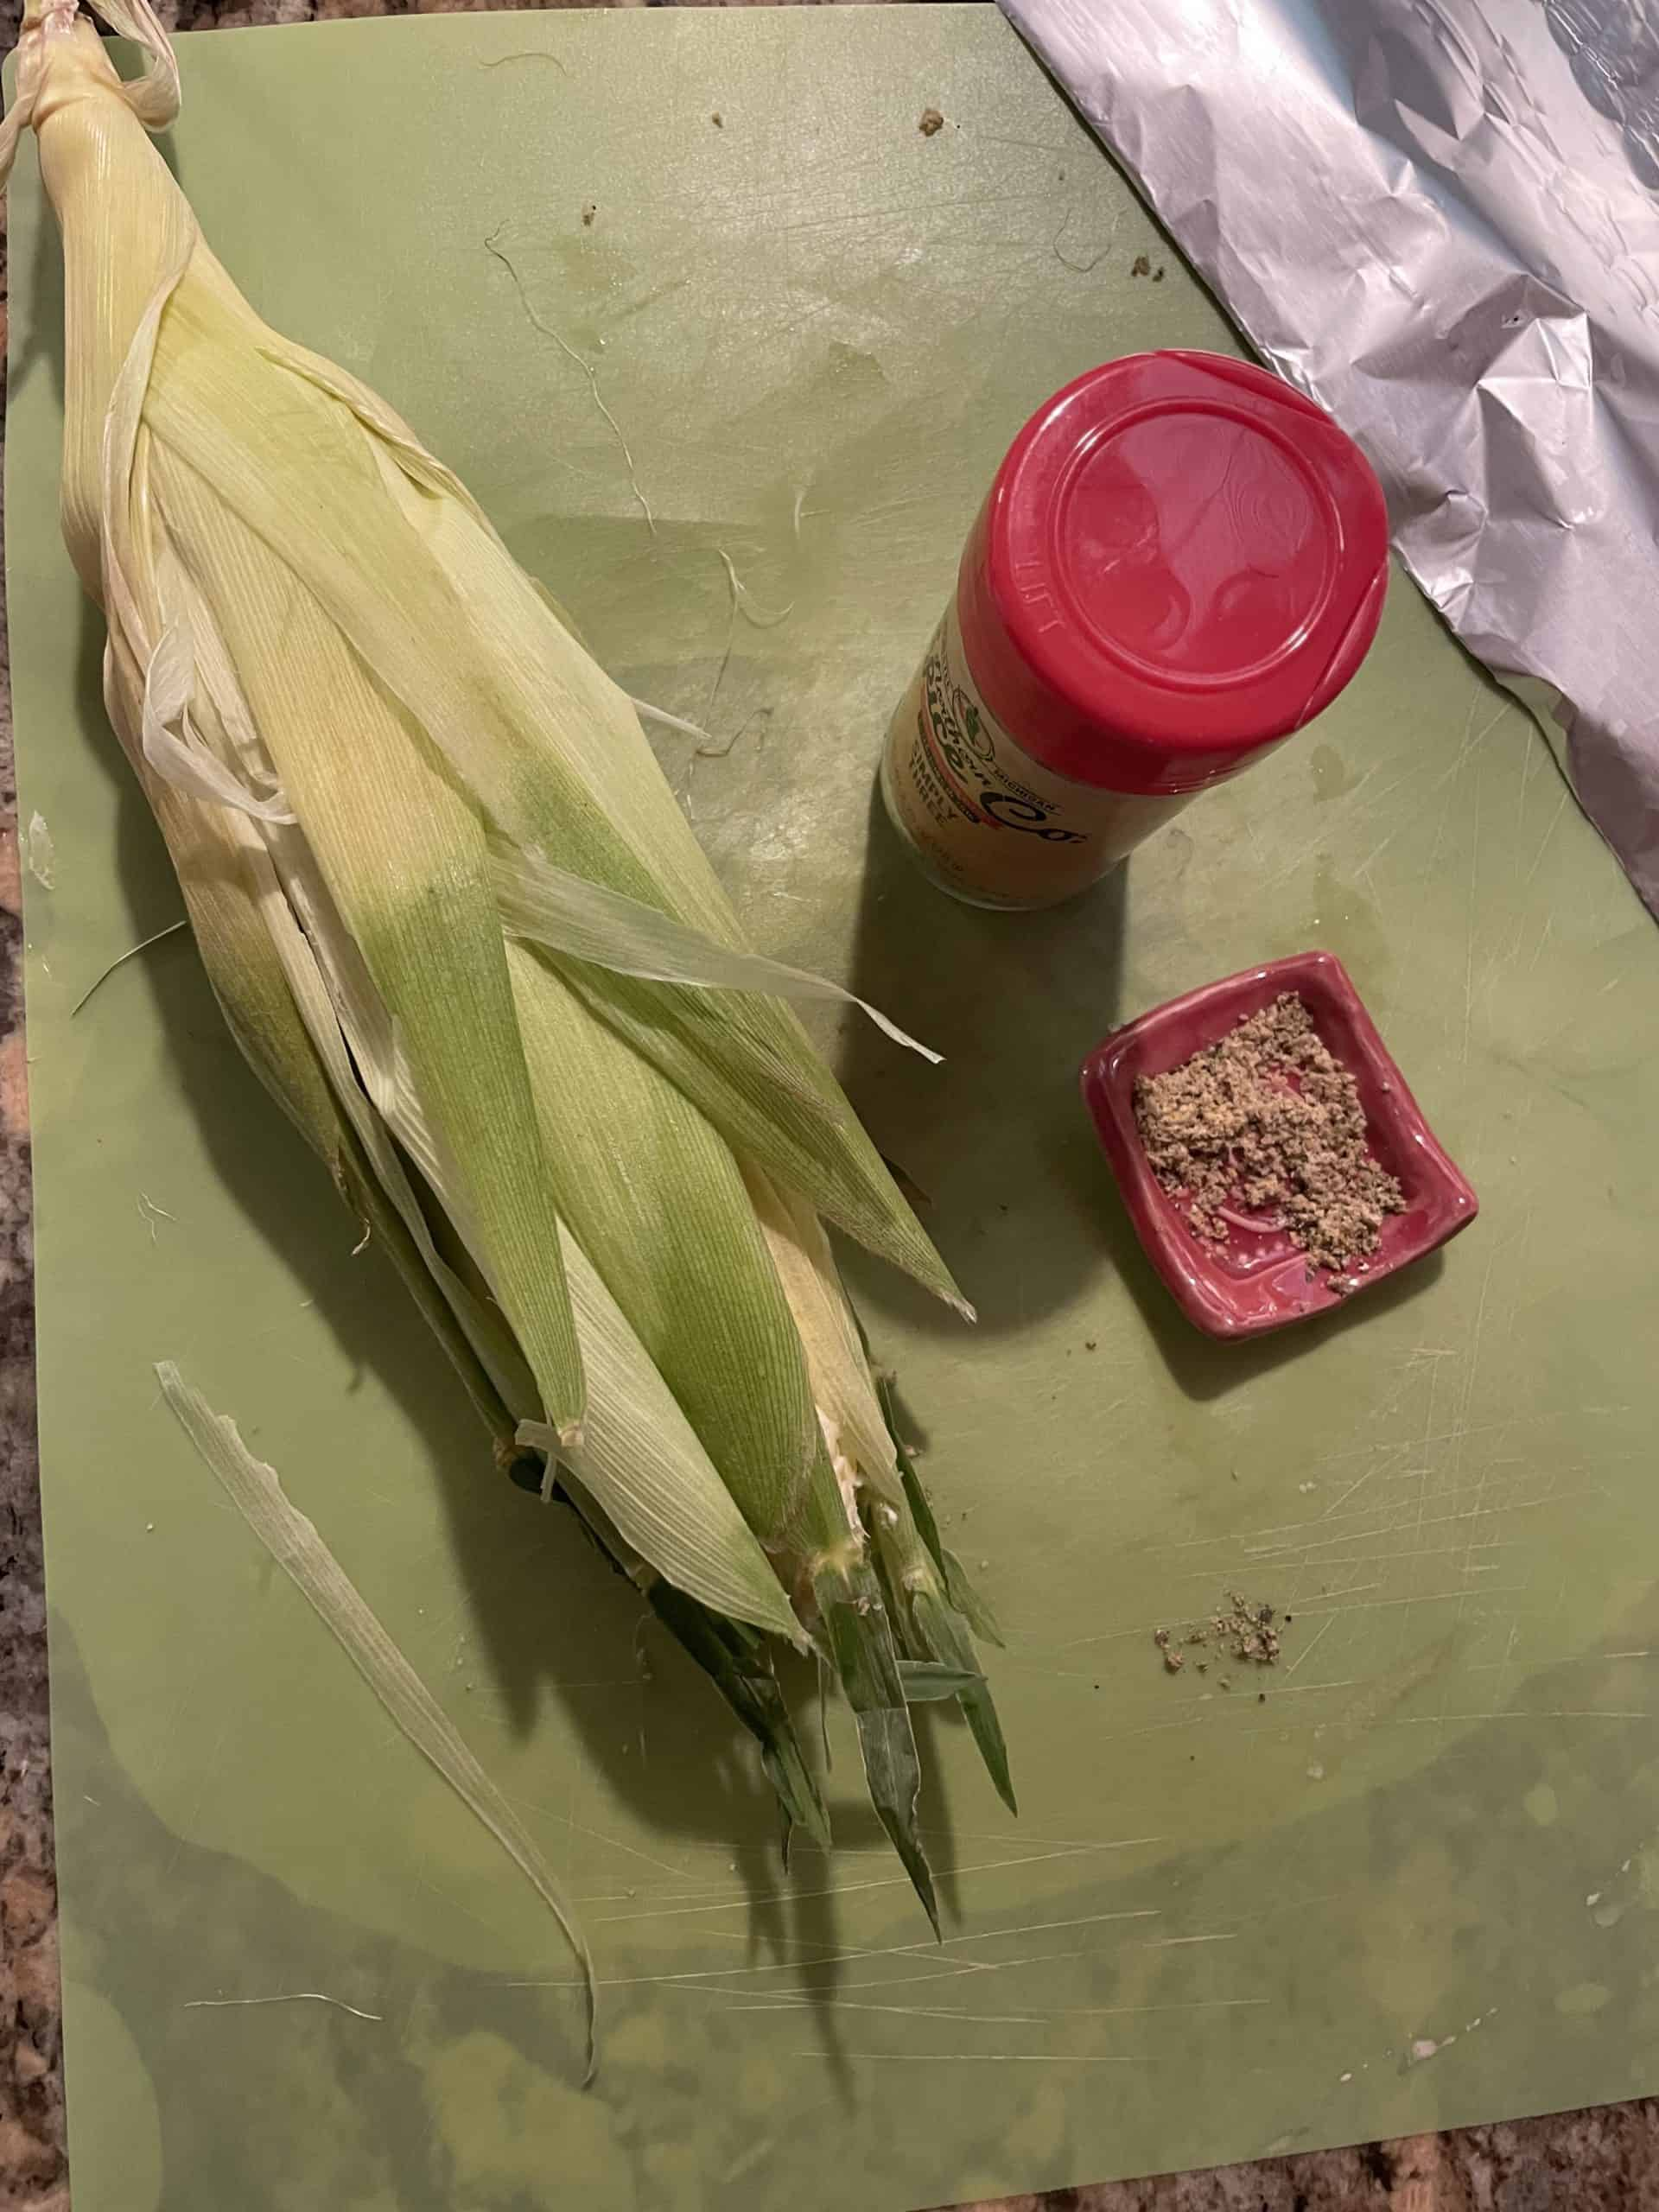 Cover buttered corn with husk.